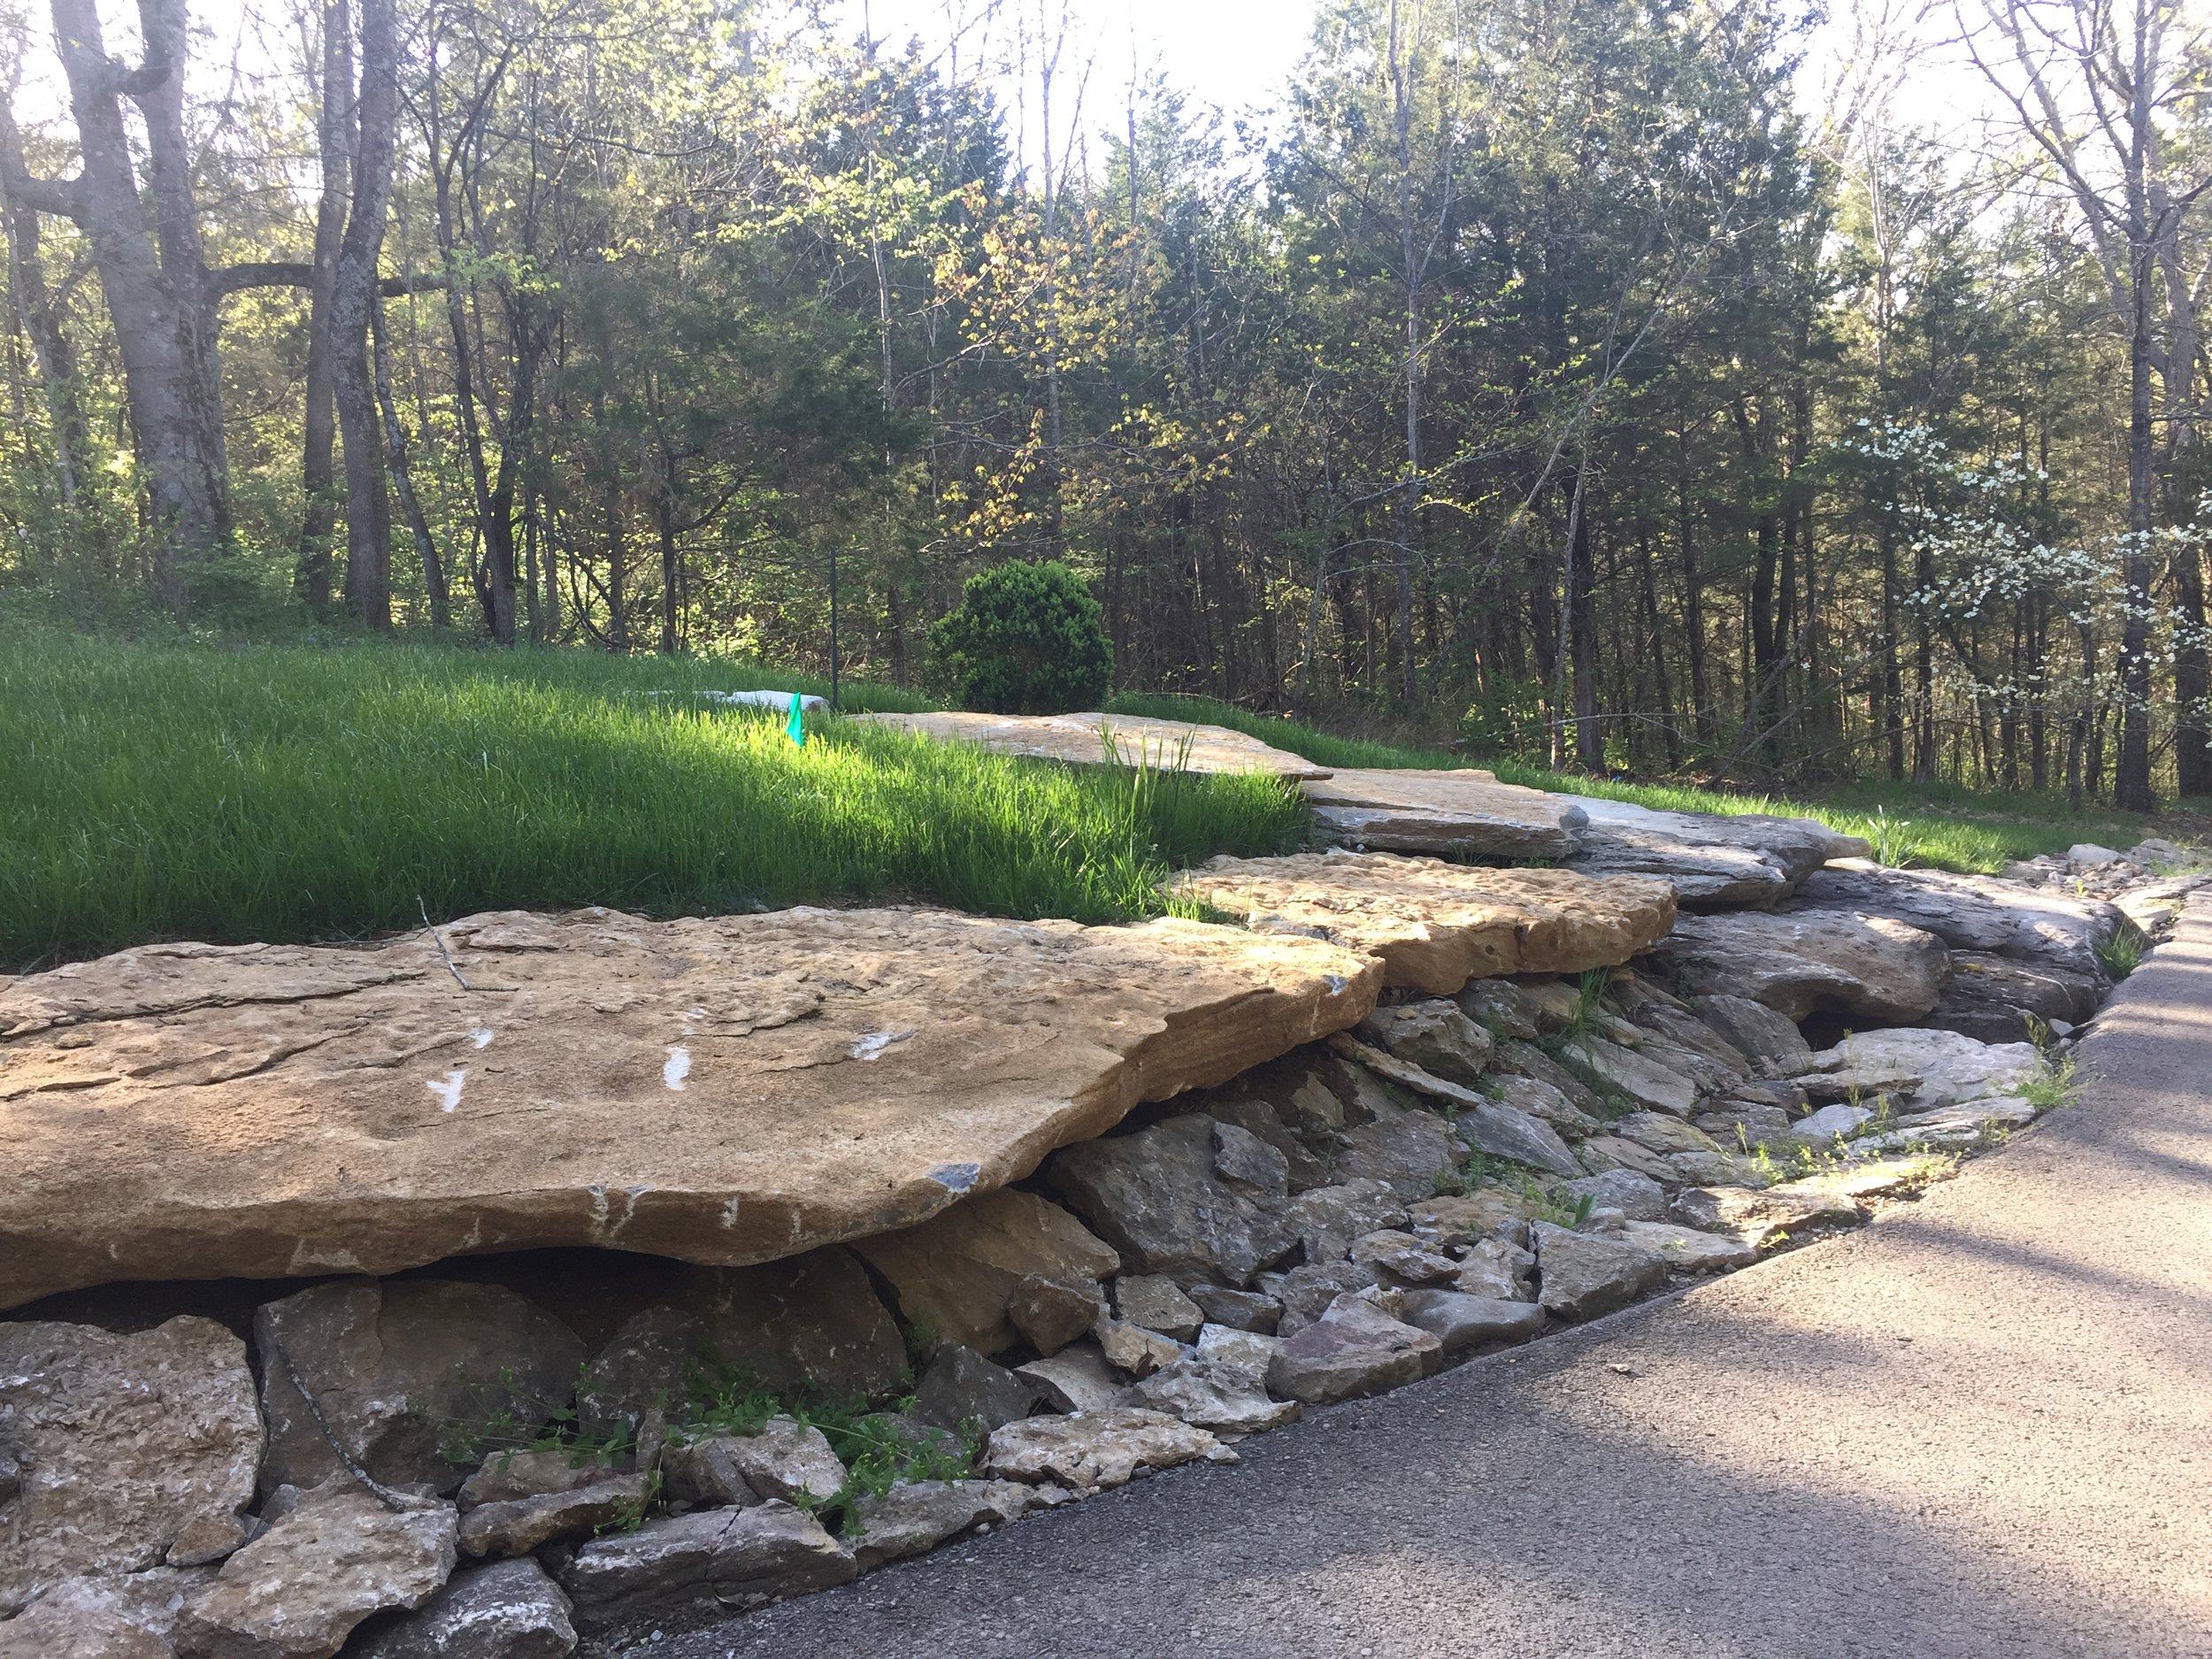 Natural stones used to construct drainage ditch